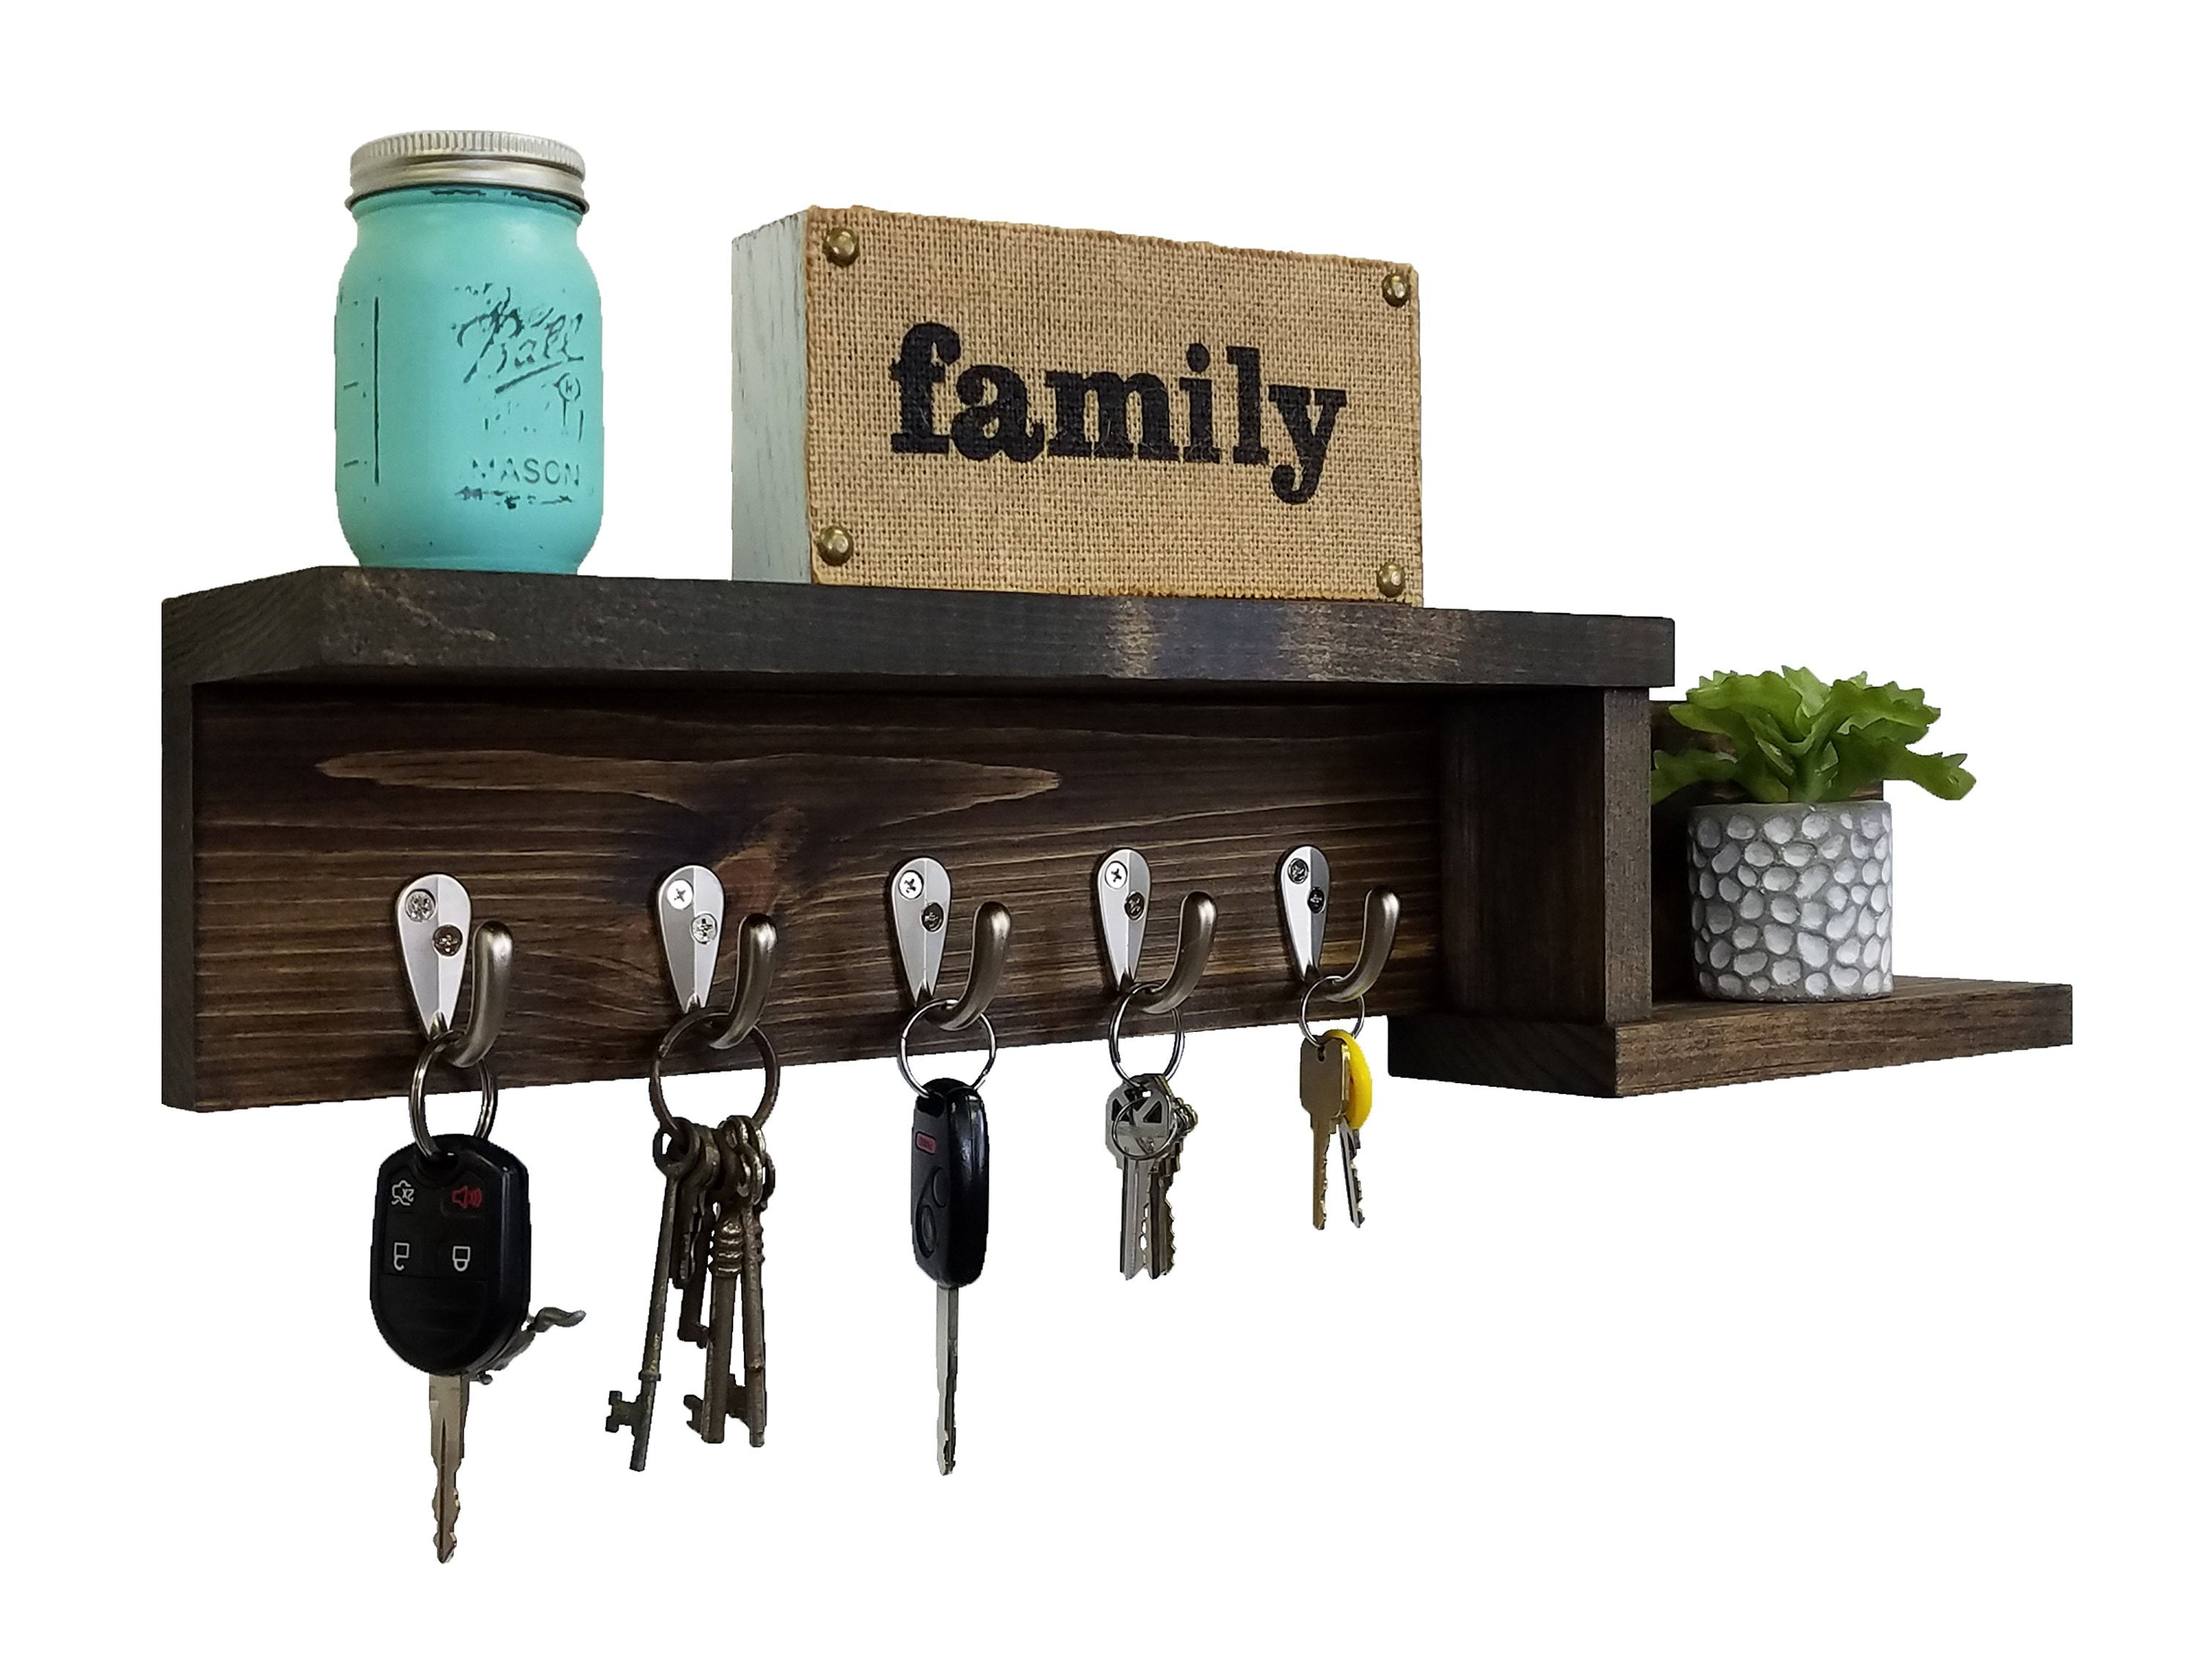 Allen Street Floating Shelf, Key Hooks and Wall Organizer - 20 Stain Colors - Renewed Decor & Storage